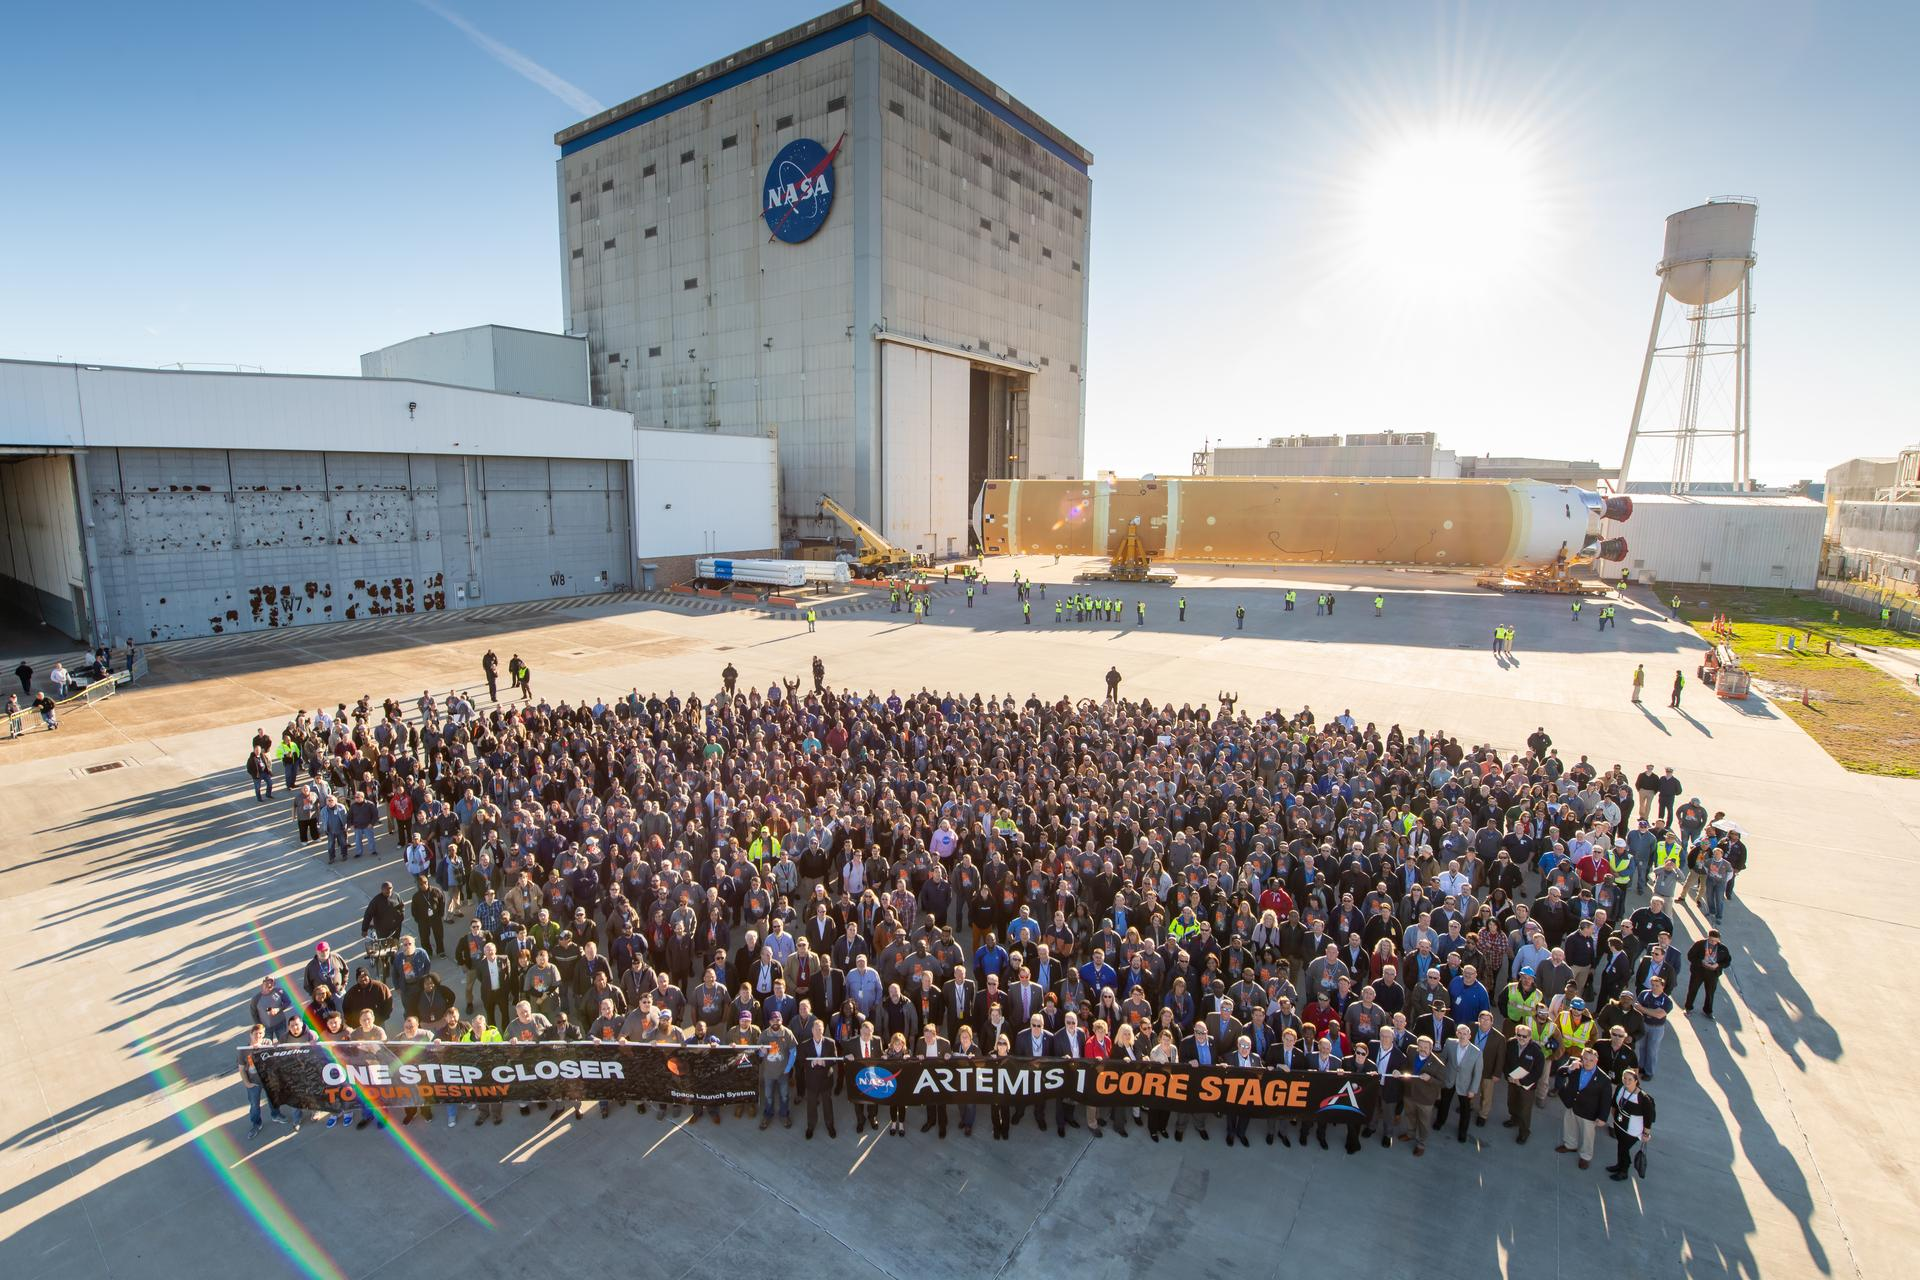 First NASA SLS Core Stage rolls out - Prepares to ship to Stennis - NASASpaceflight.com